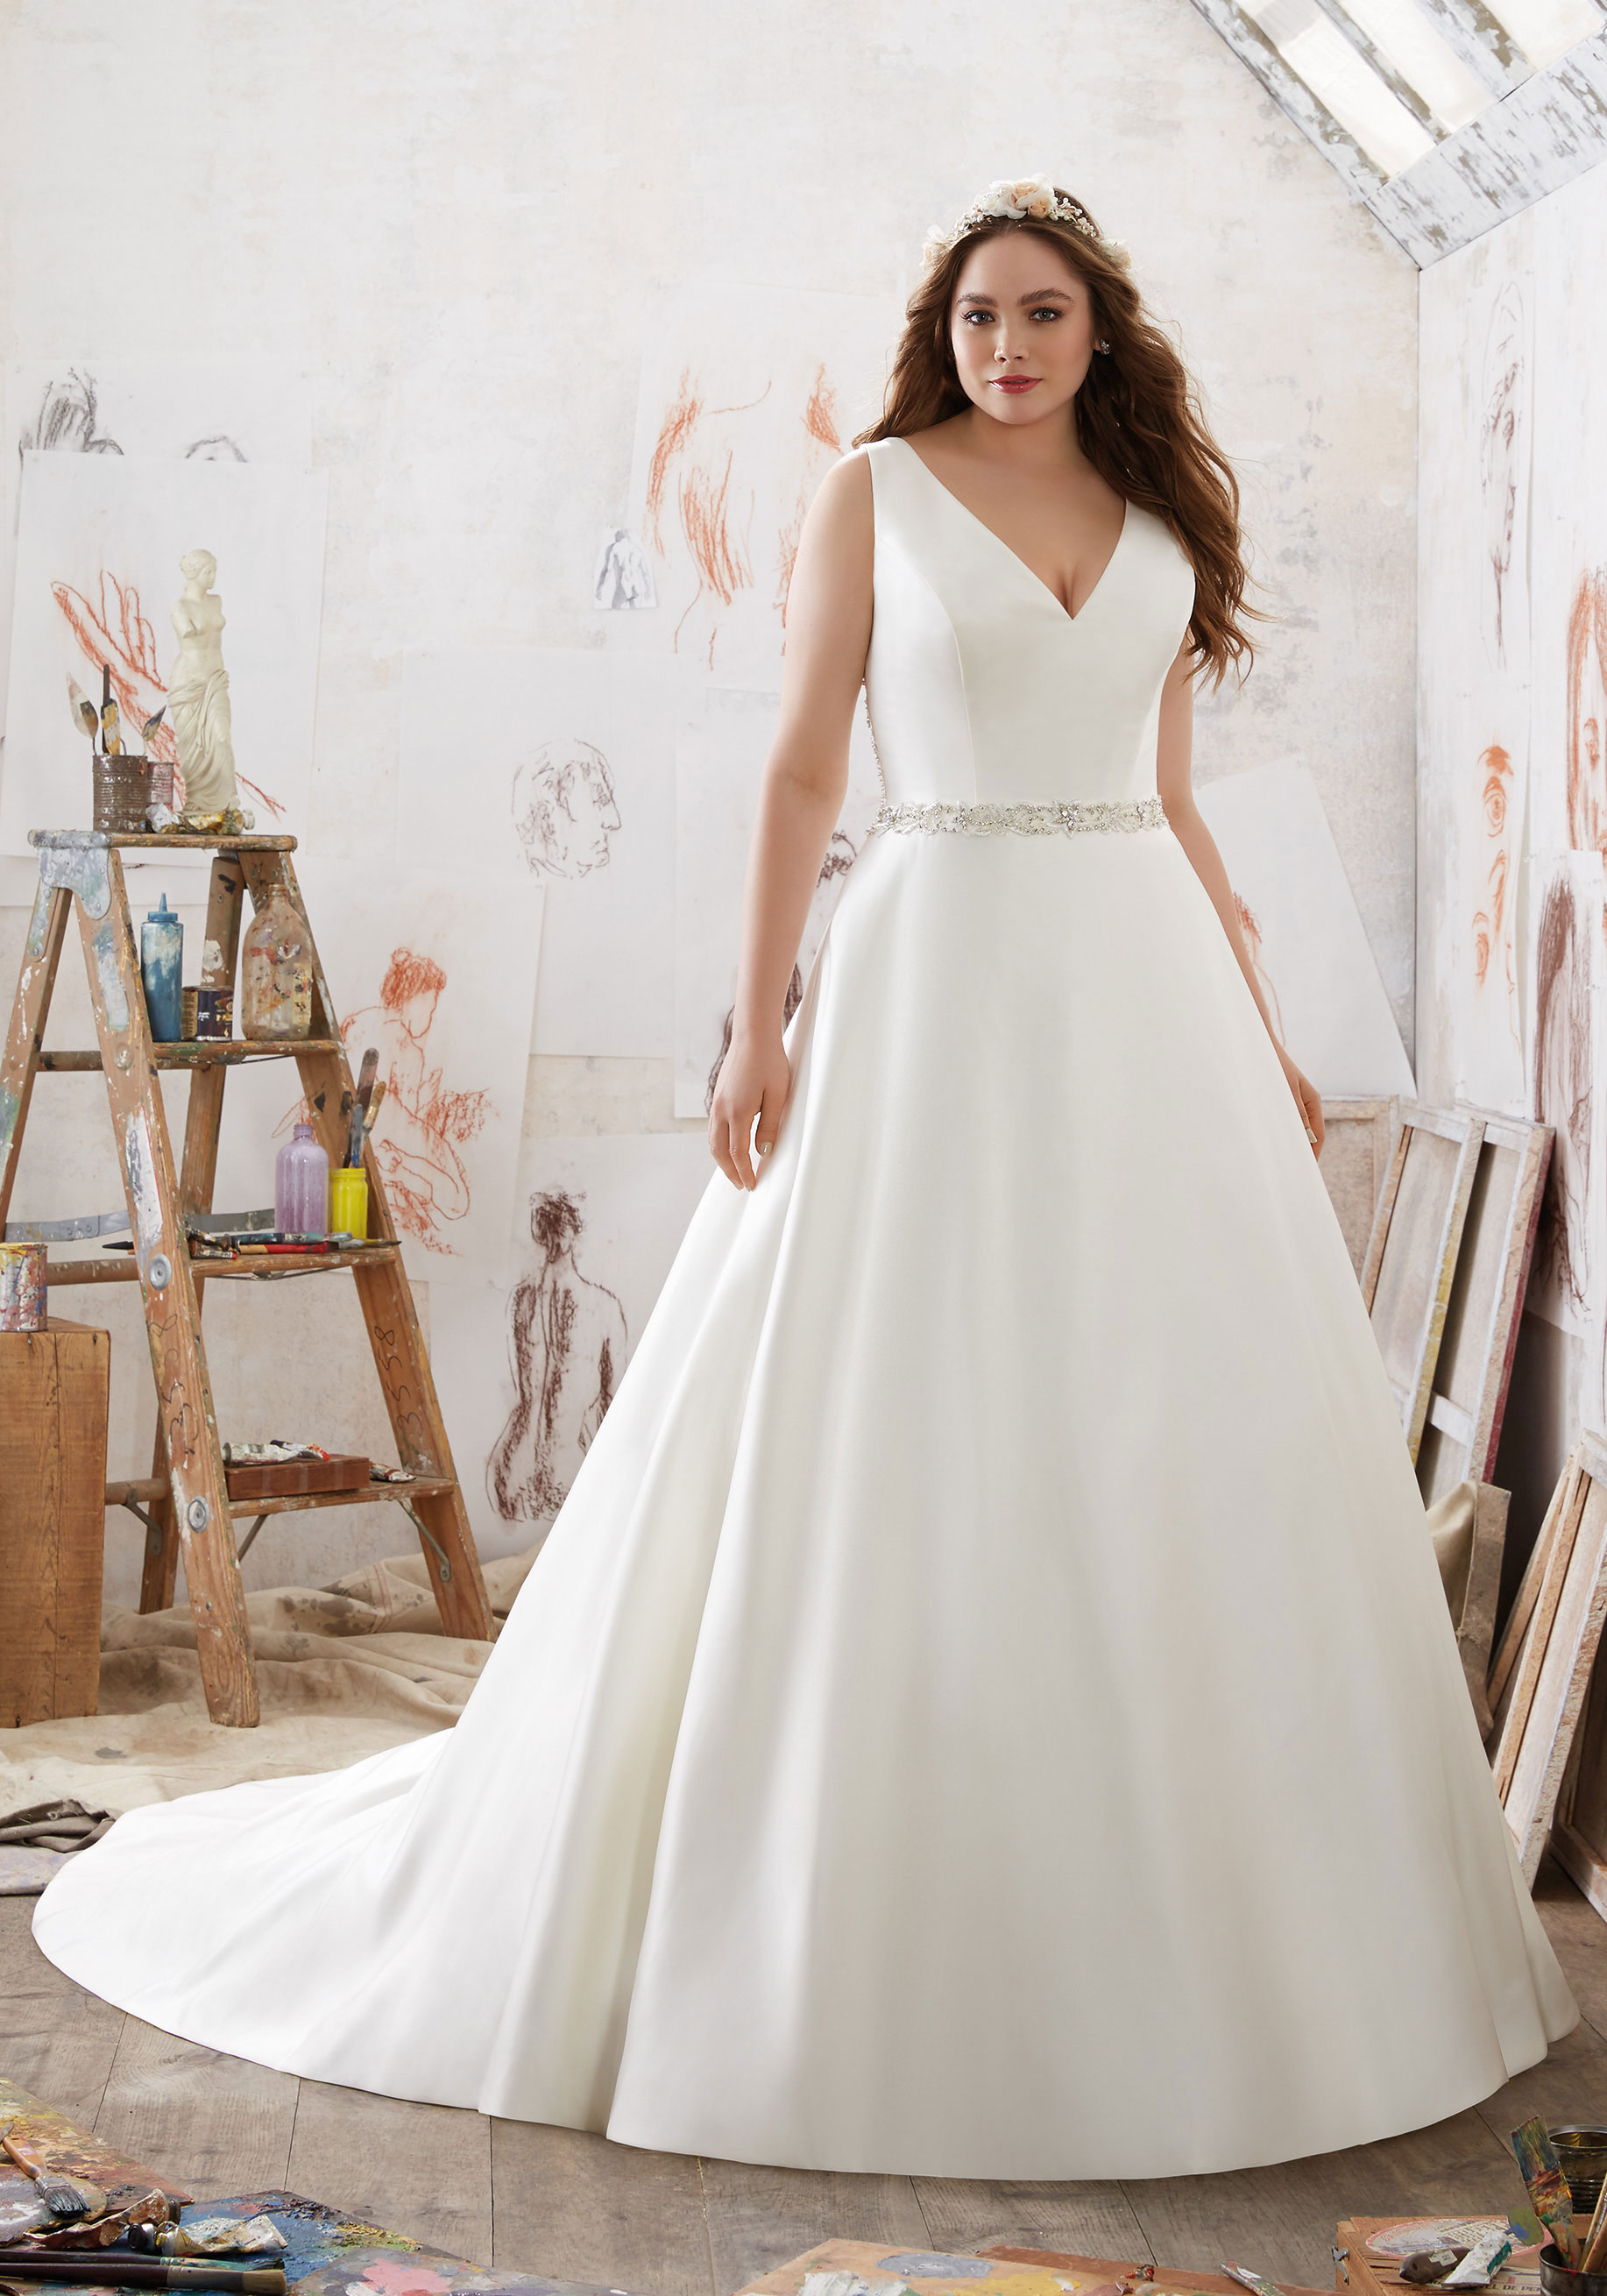 Affordable wedding dresses for plus size women 2018 plus size plus size wedding dresses with sleeves ombrellifo Choice Image